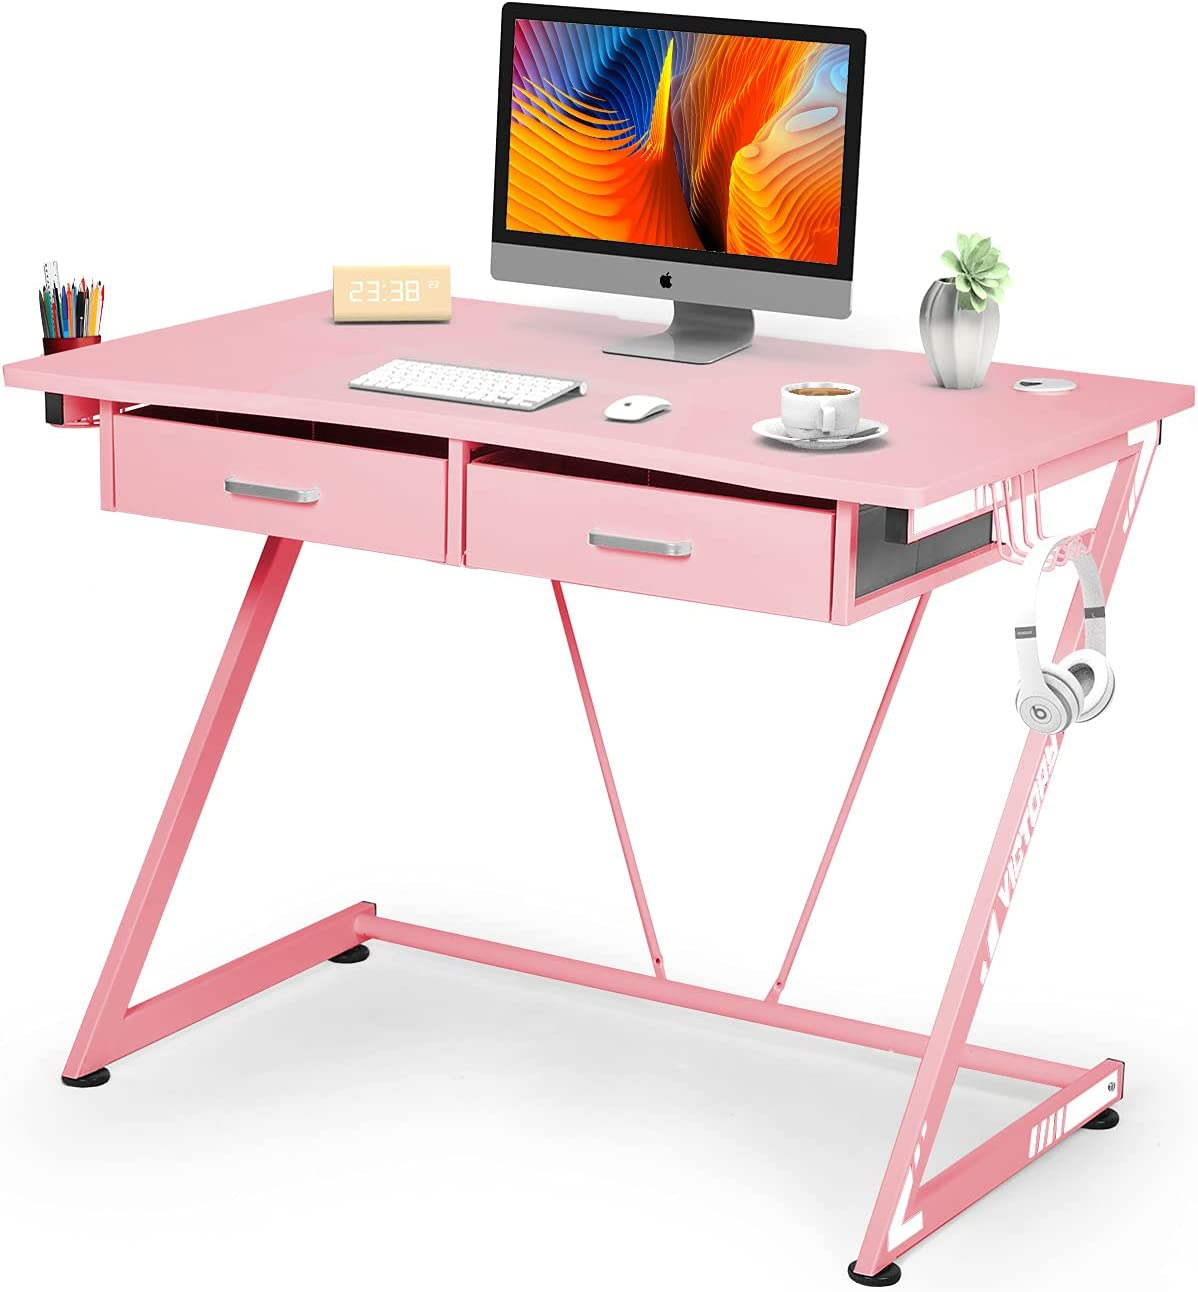 Computer Desk 39'' latest Max 63% OFF PC Home Office Z-Shaped Gaming